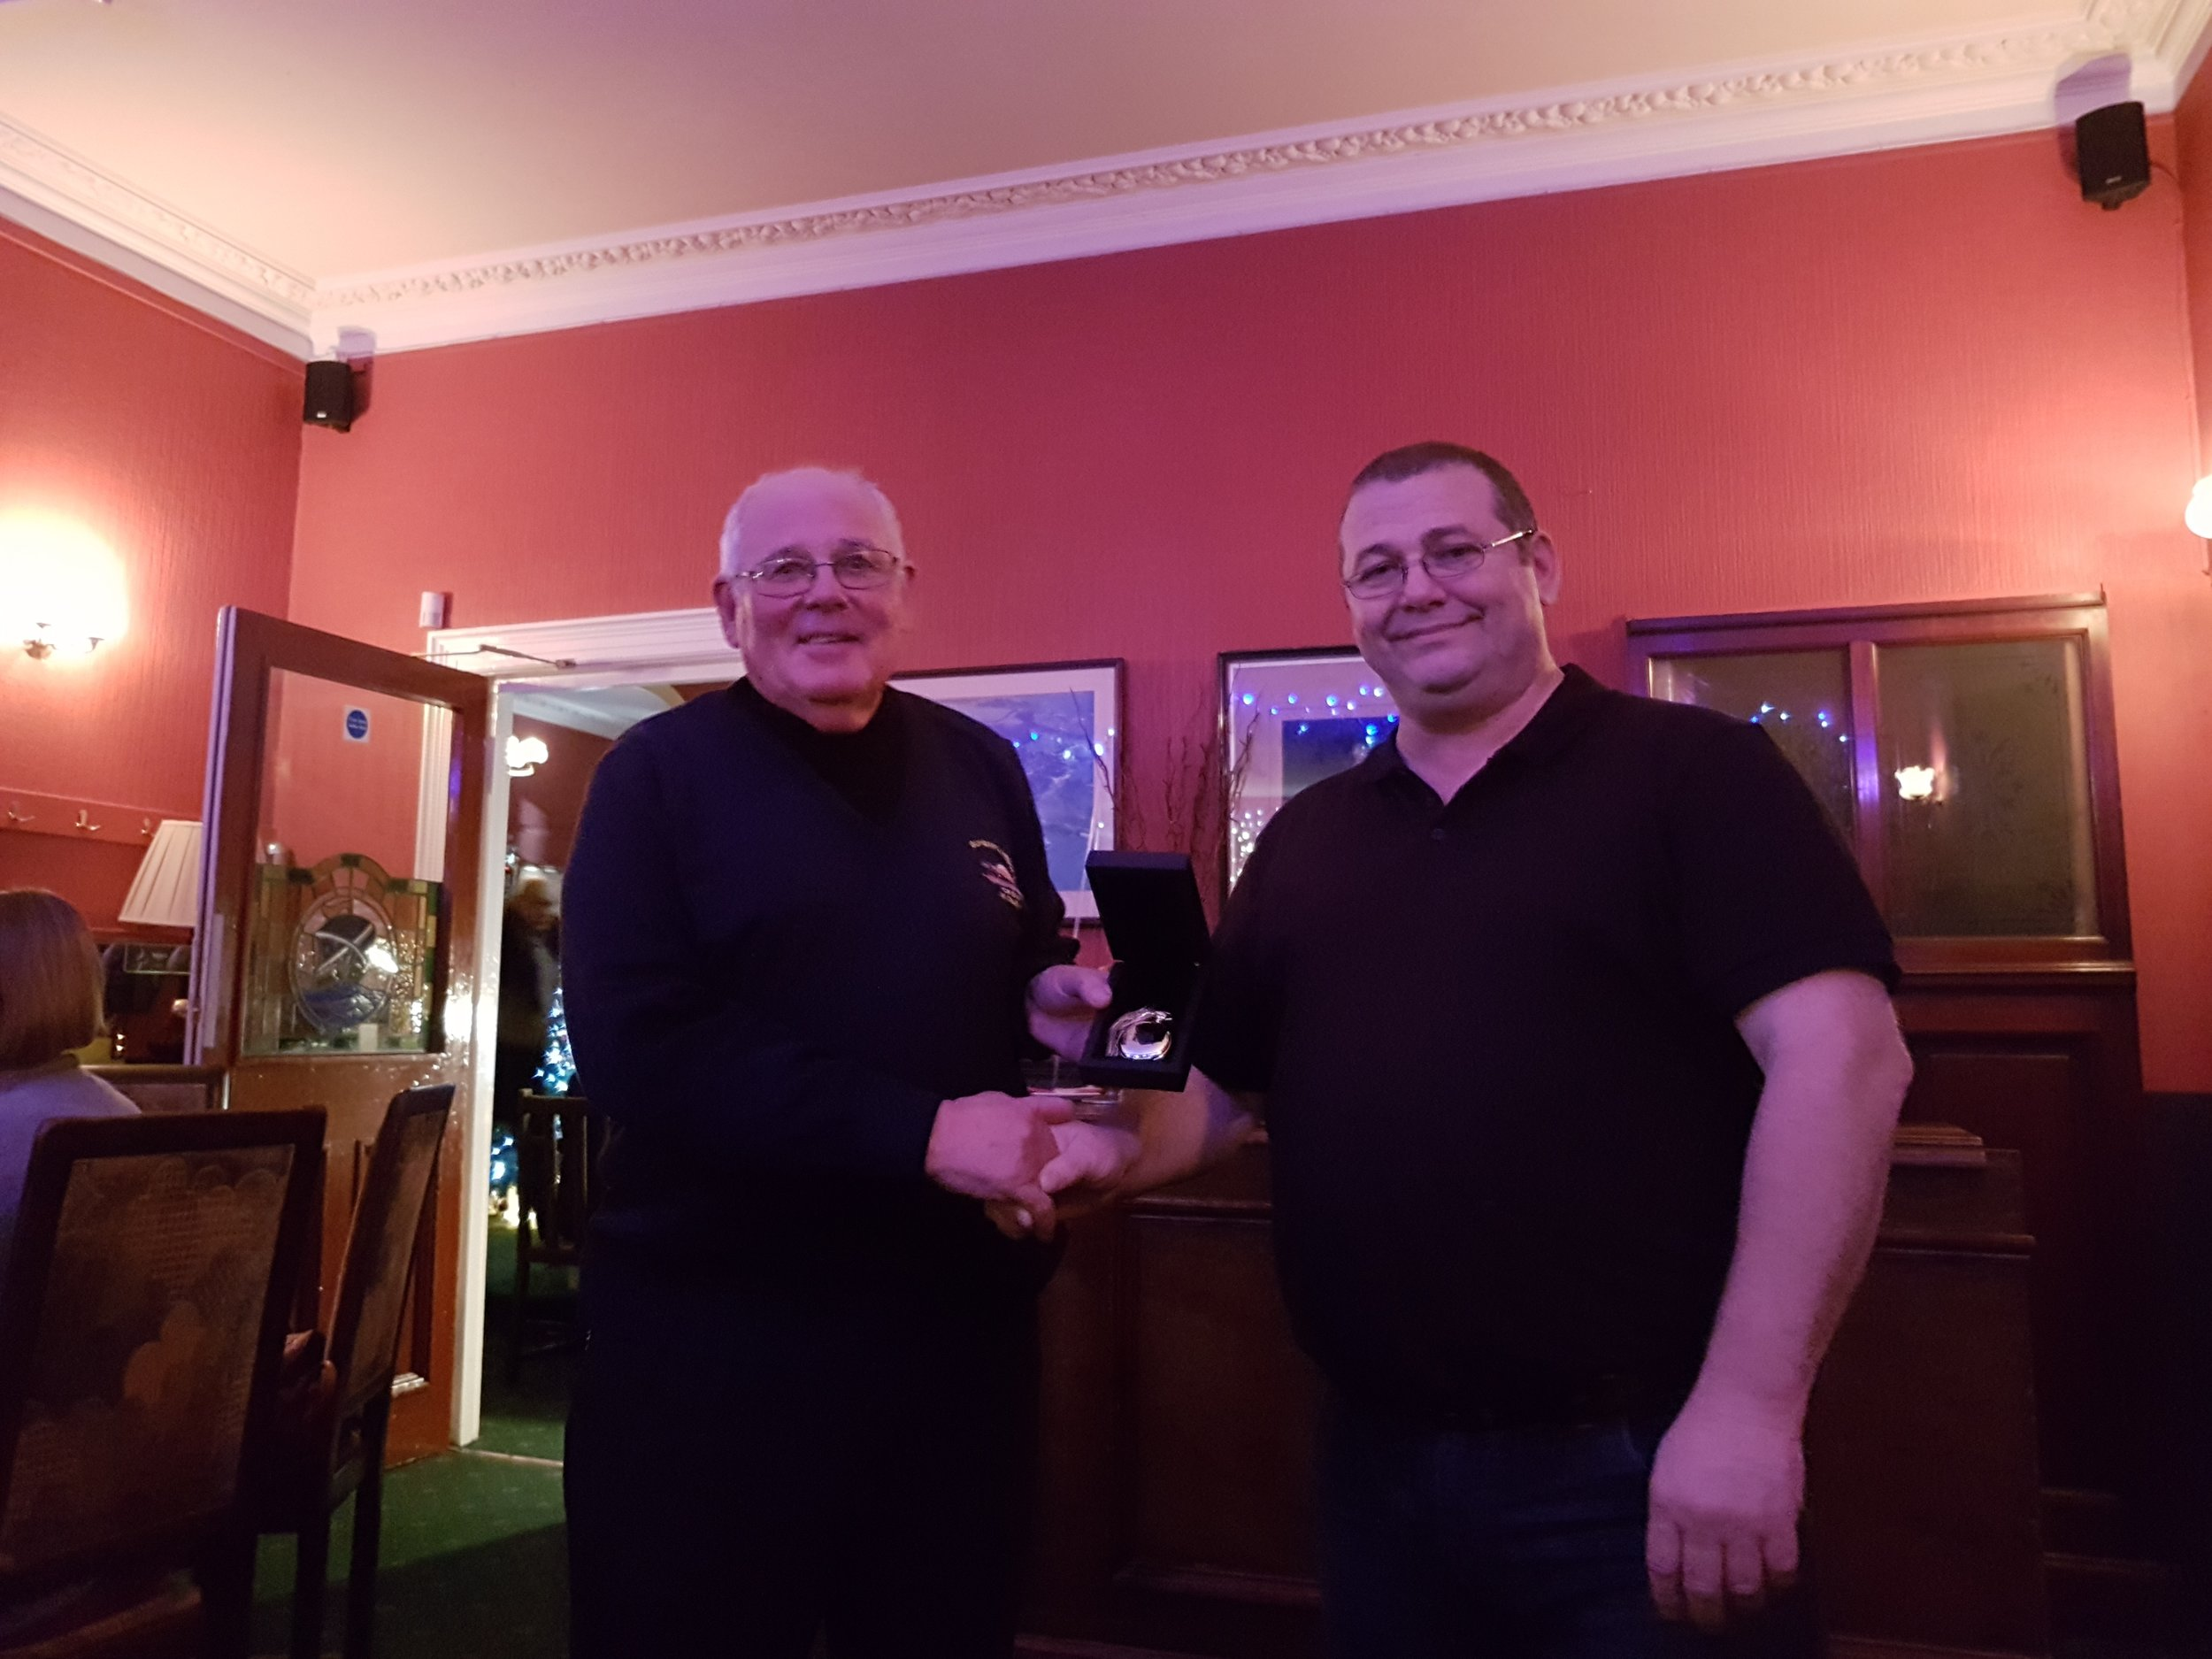 Coxswain Gary Fairbairn presents Mike with his gift and thanks him for his time and work over the years.